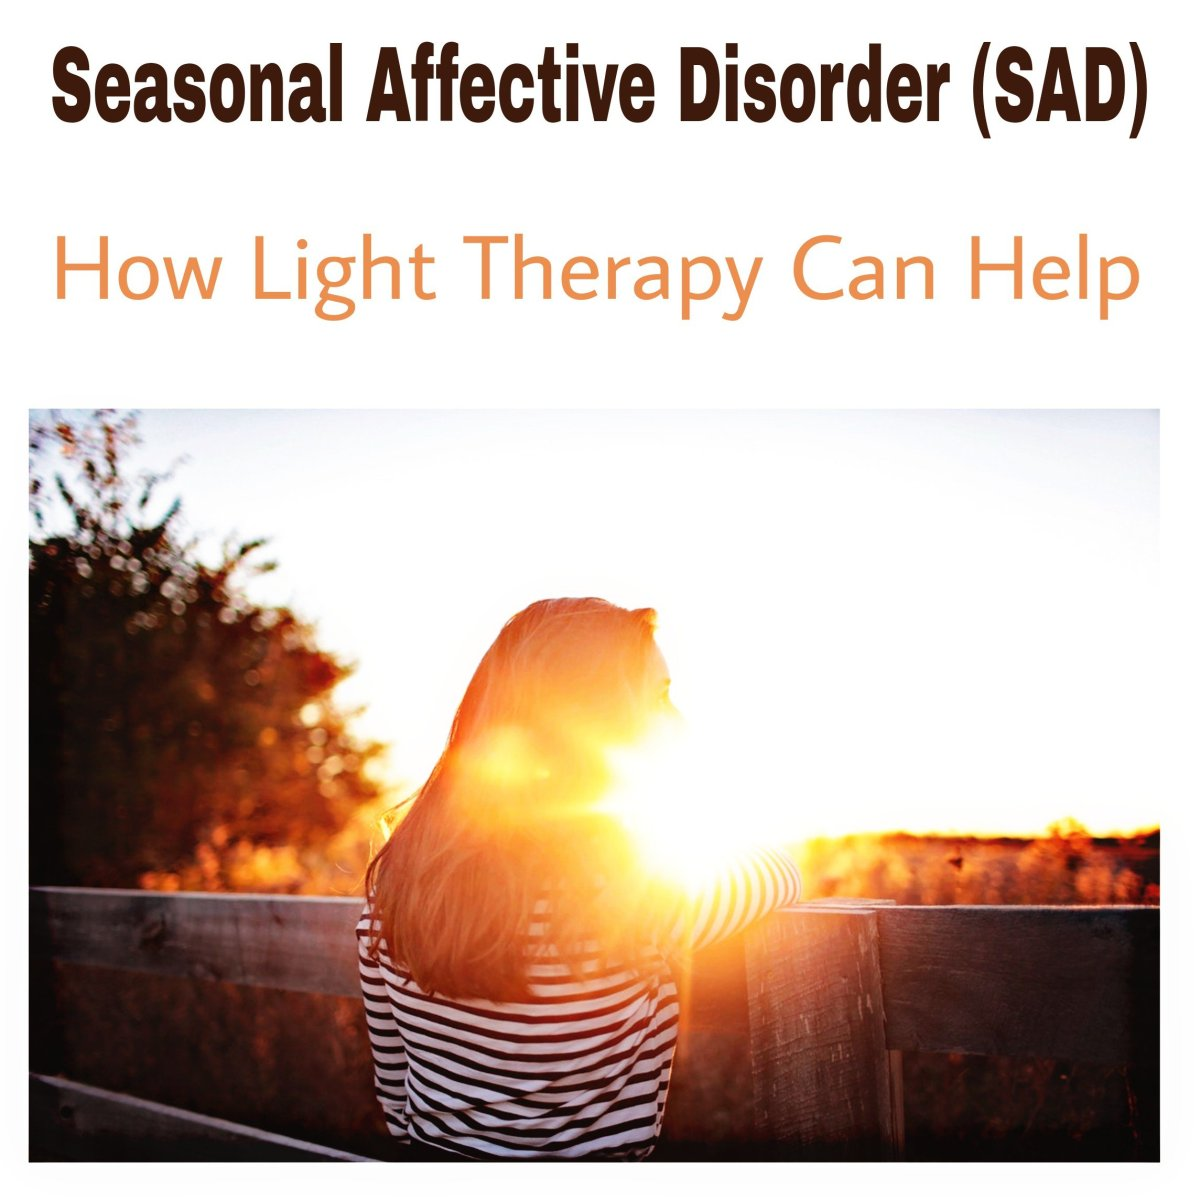 Seasonal Affective Disorder (SAD): How Light Therapy Can Help